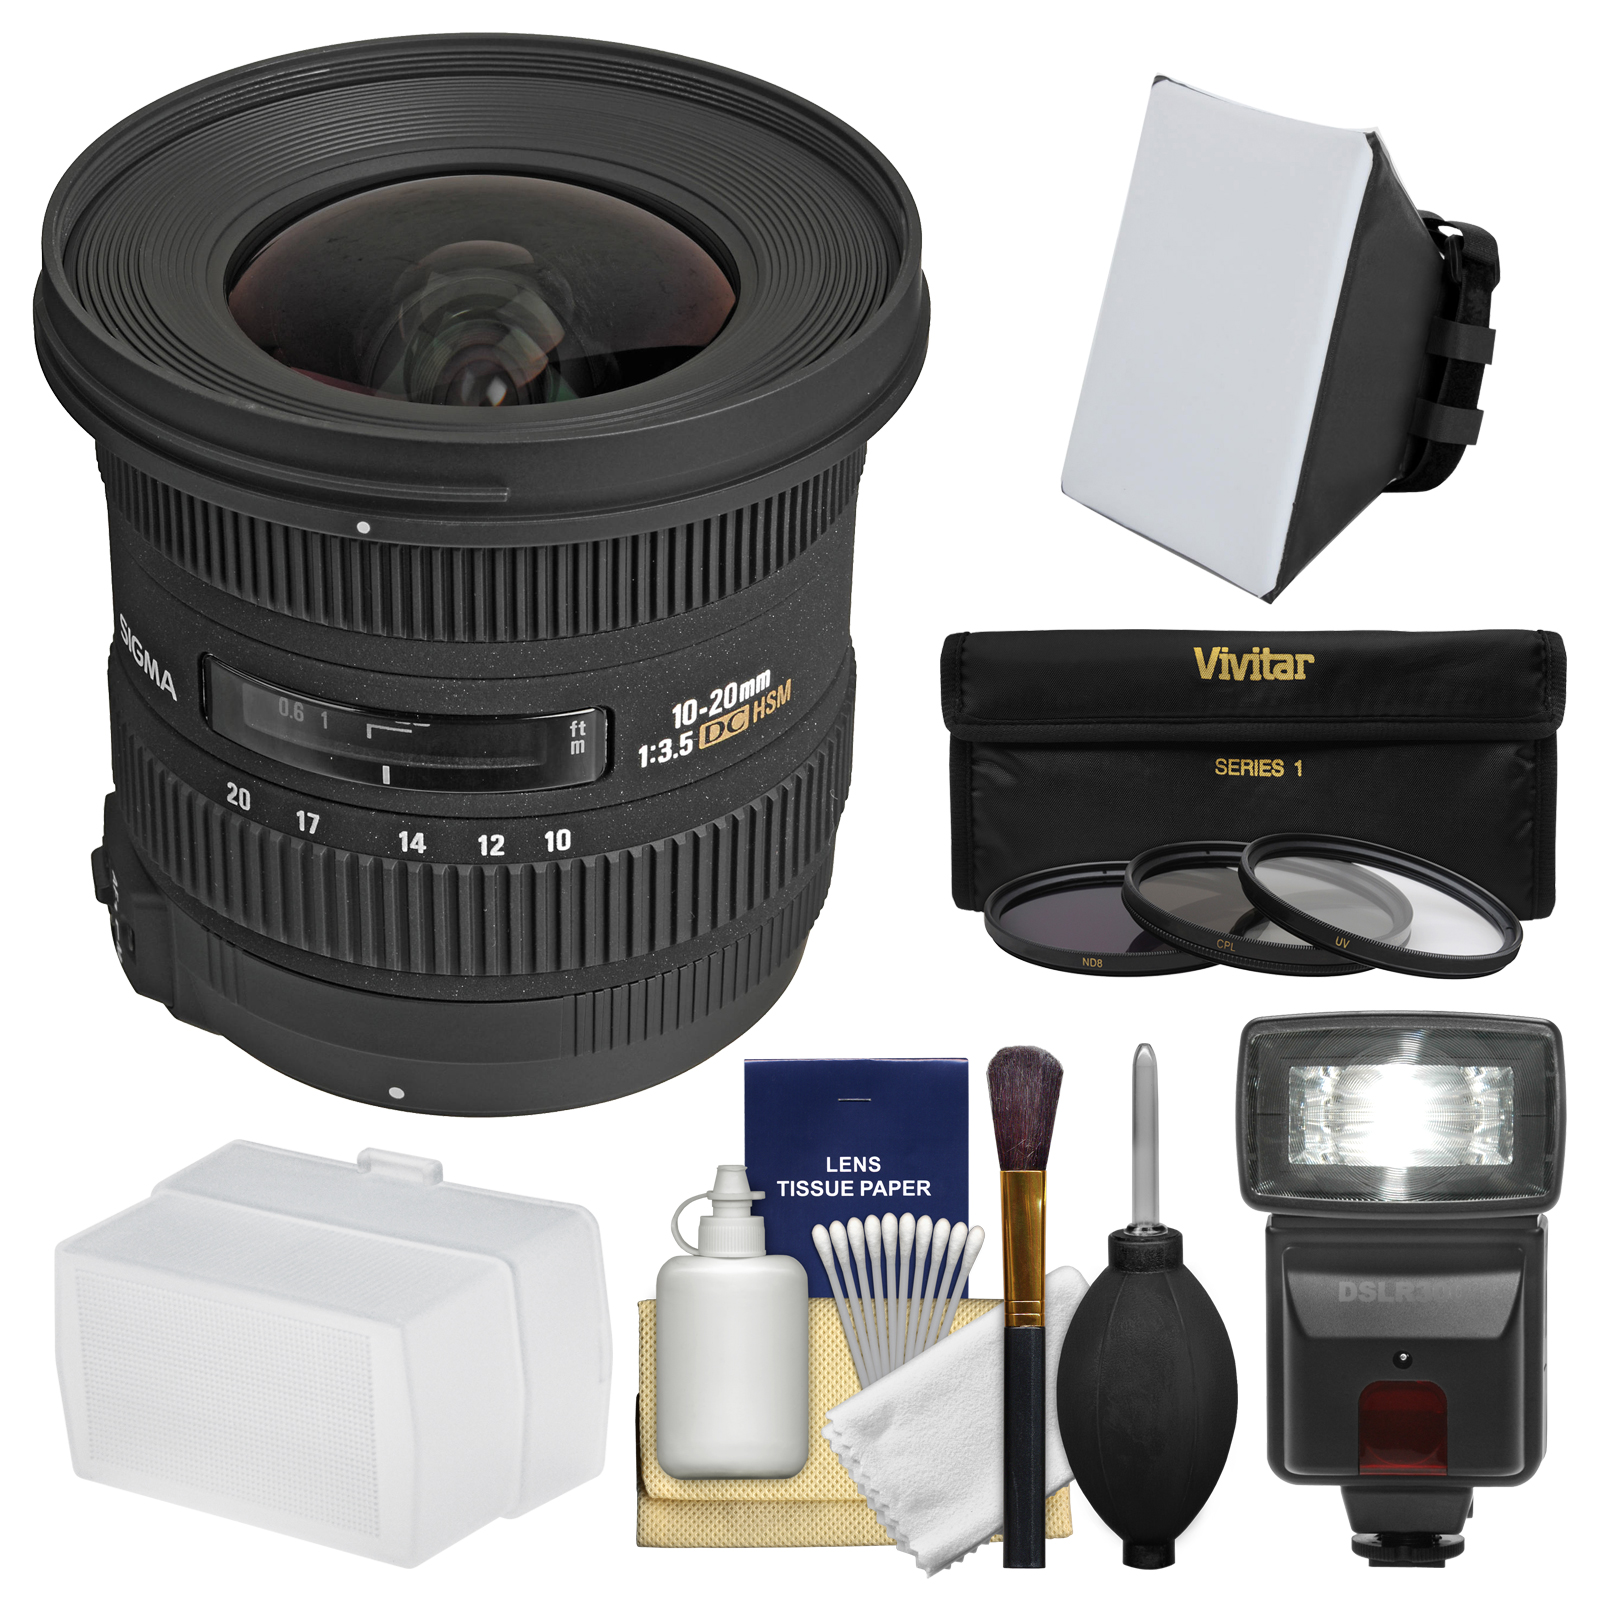 Sigma 10-20mm f/3.5 EX DC HSM Zoom Lens with Flash   Soft Box   Bounce Diffuser   3 Filters Kit for Nikon DSLR Cameras